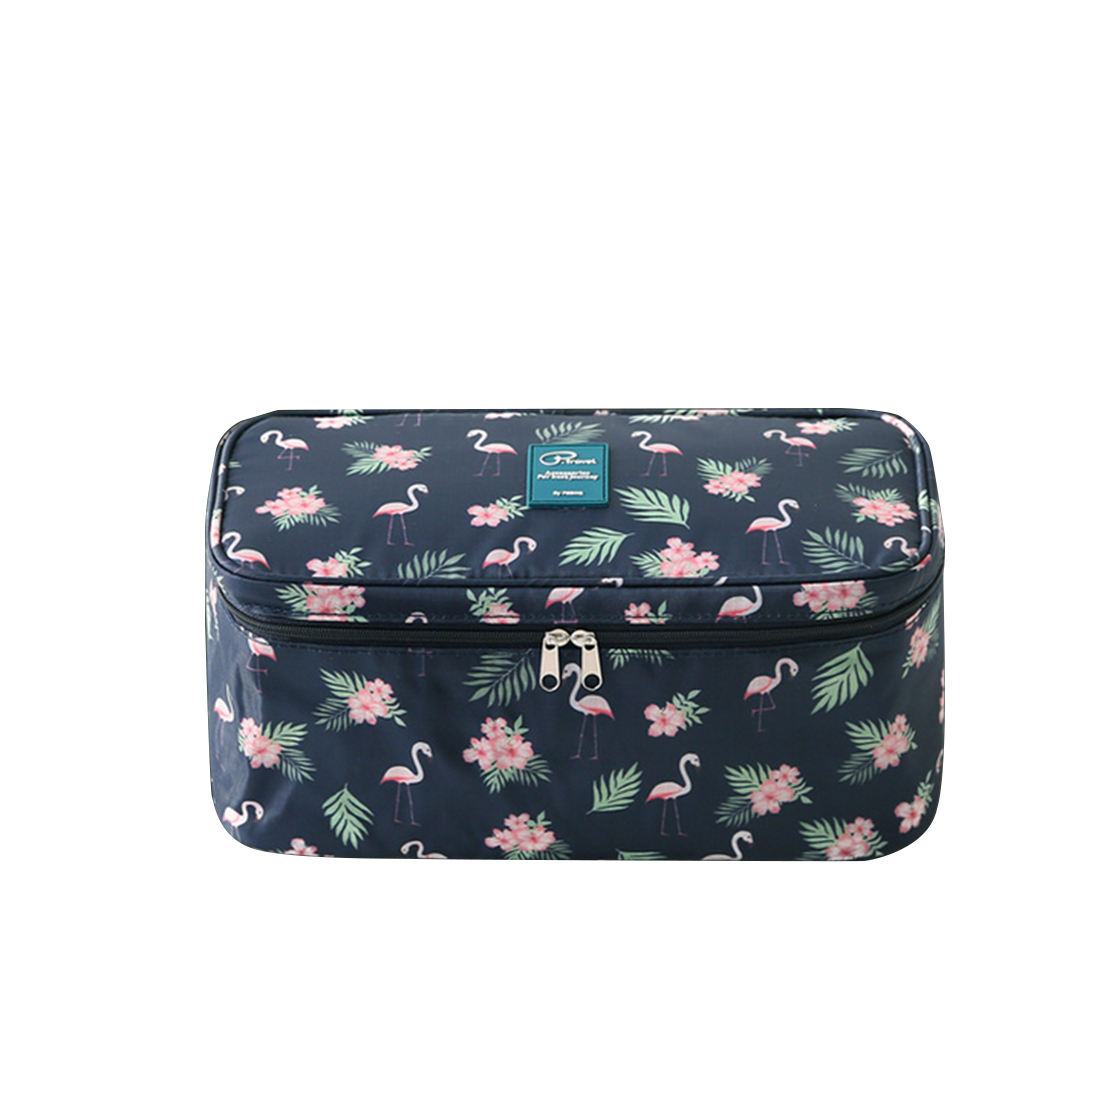 ARESLAND Fashion Flamingo women cosmetic Washing makeup Bag  Travel Toiletries Travelling cosmetics Storage Bag - Dark Blue